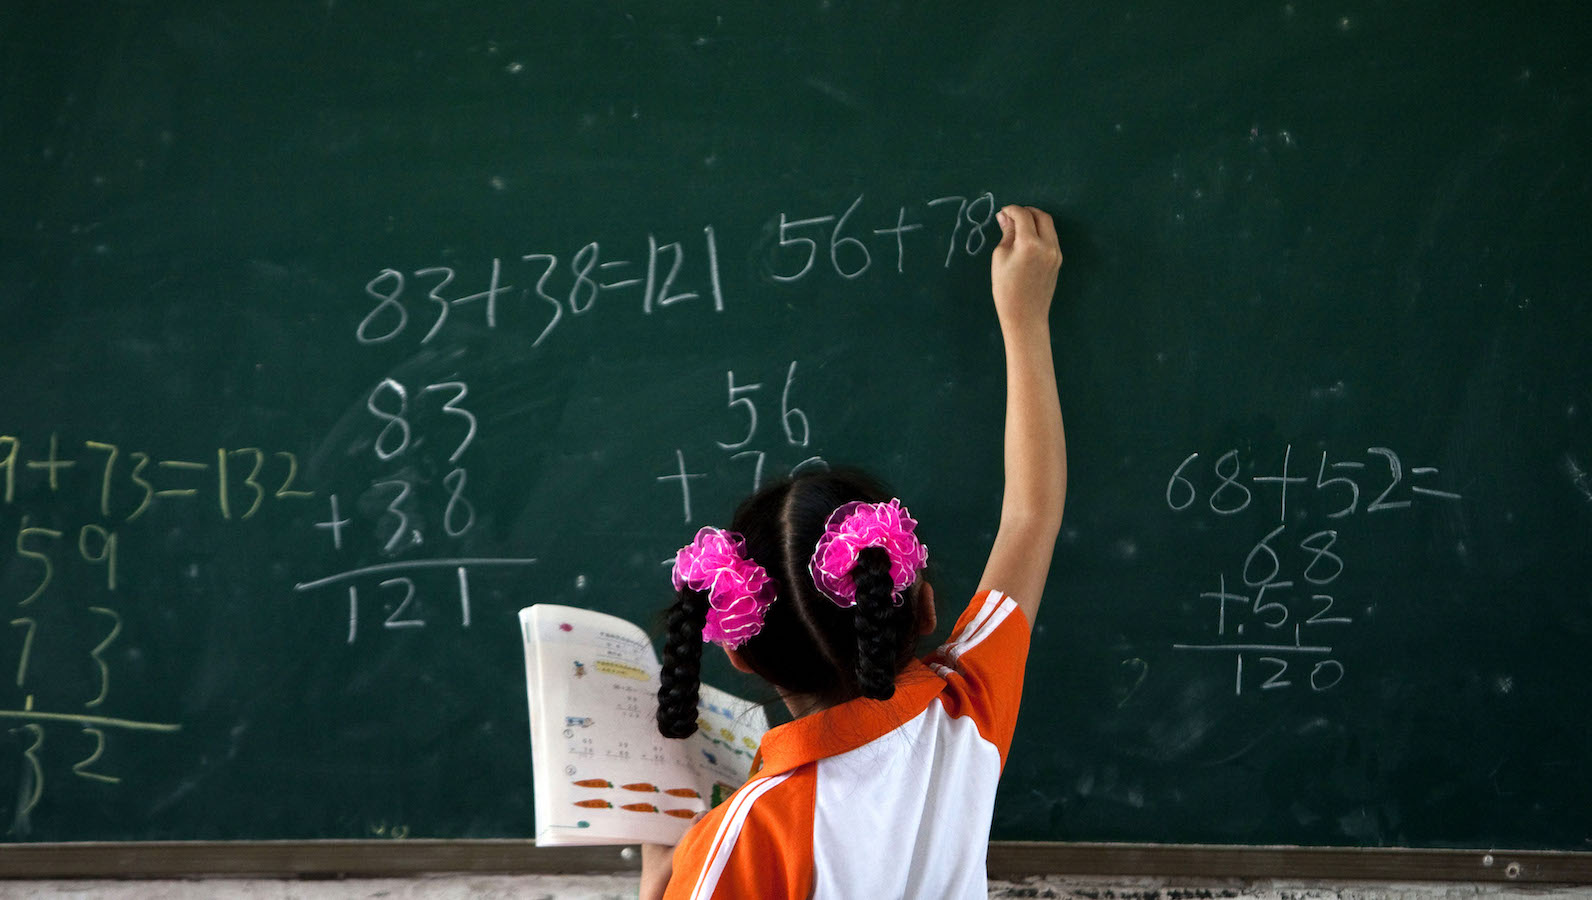 The STEM gender gap comes from girls' advantage in reading over math